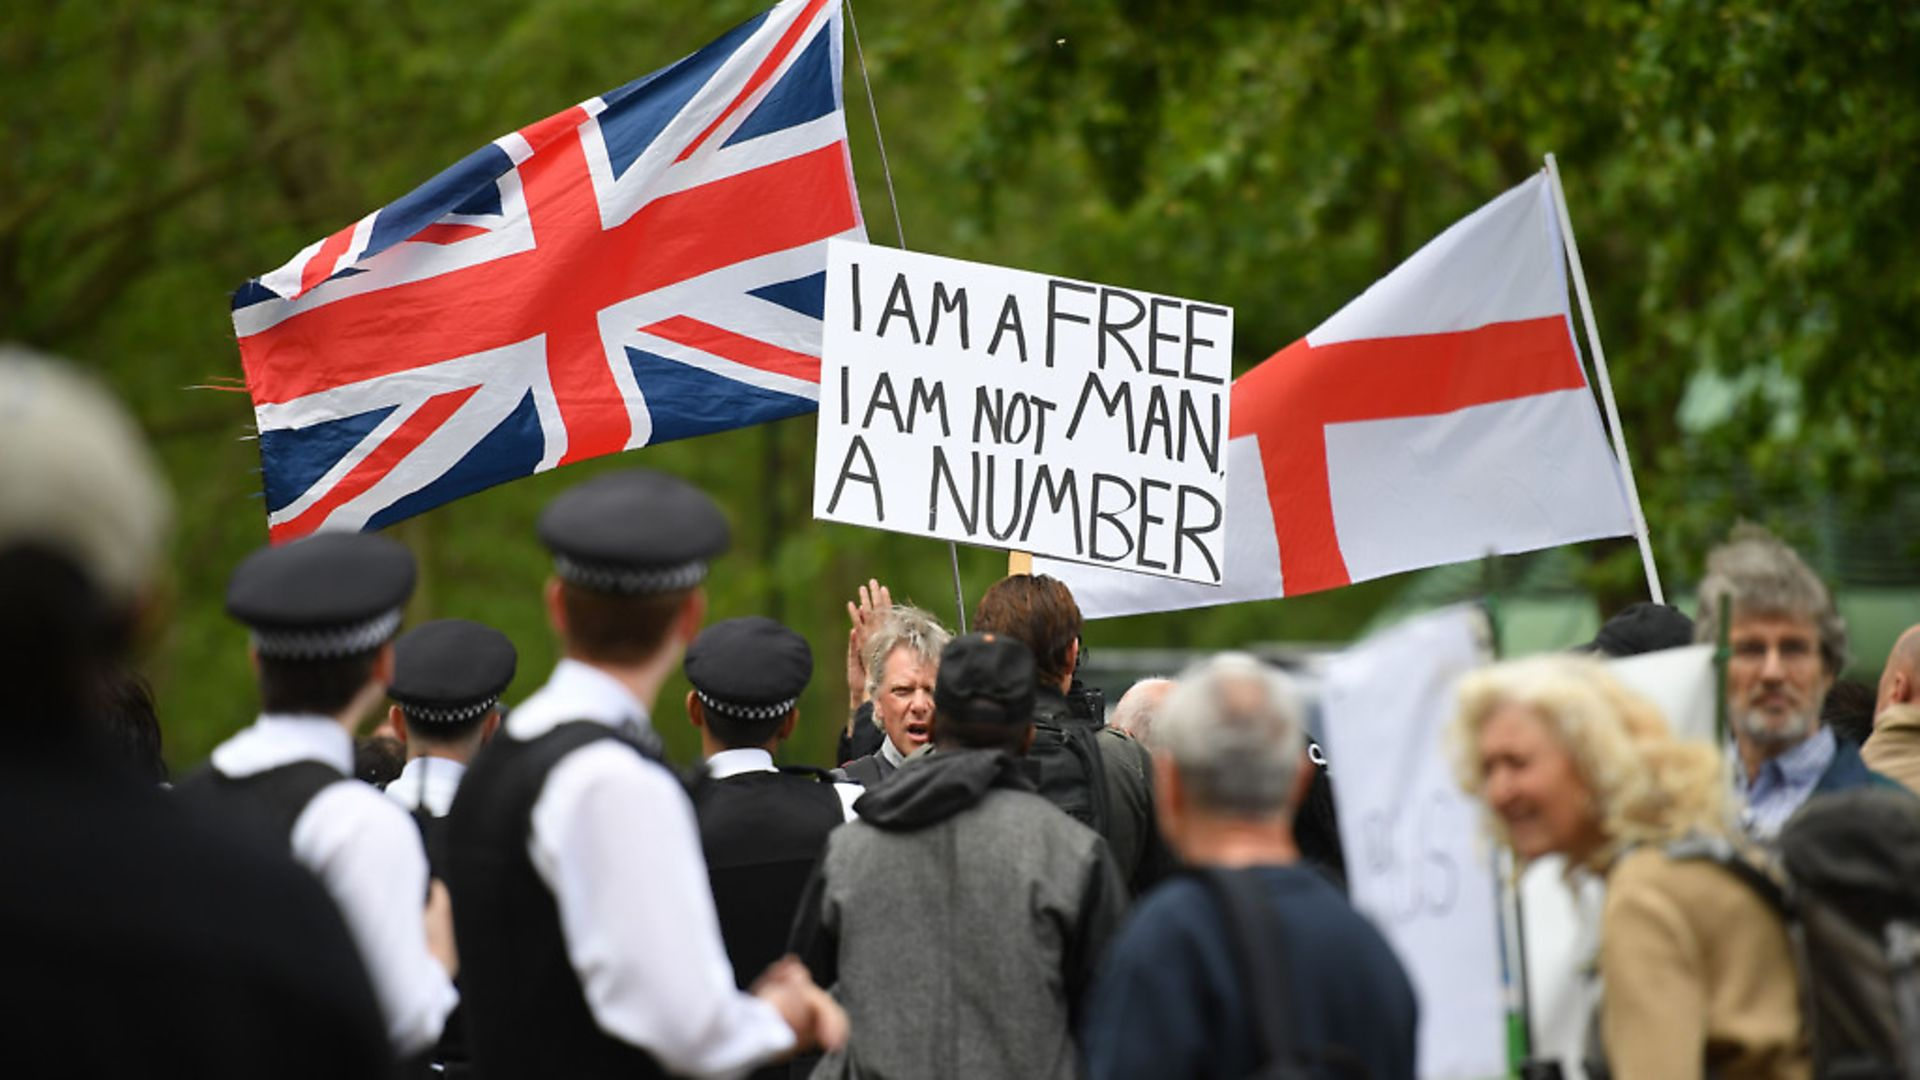 Police attend an anti-coronavirus lockdown demonstration with protesters in London's Hyde Park. Picture: Getty Images - Credit: AFP via Getty Images